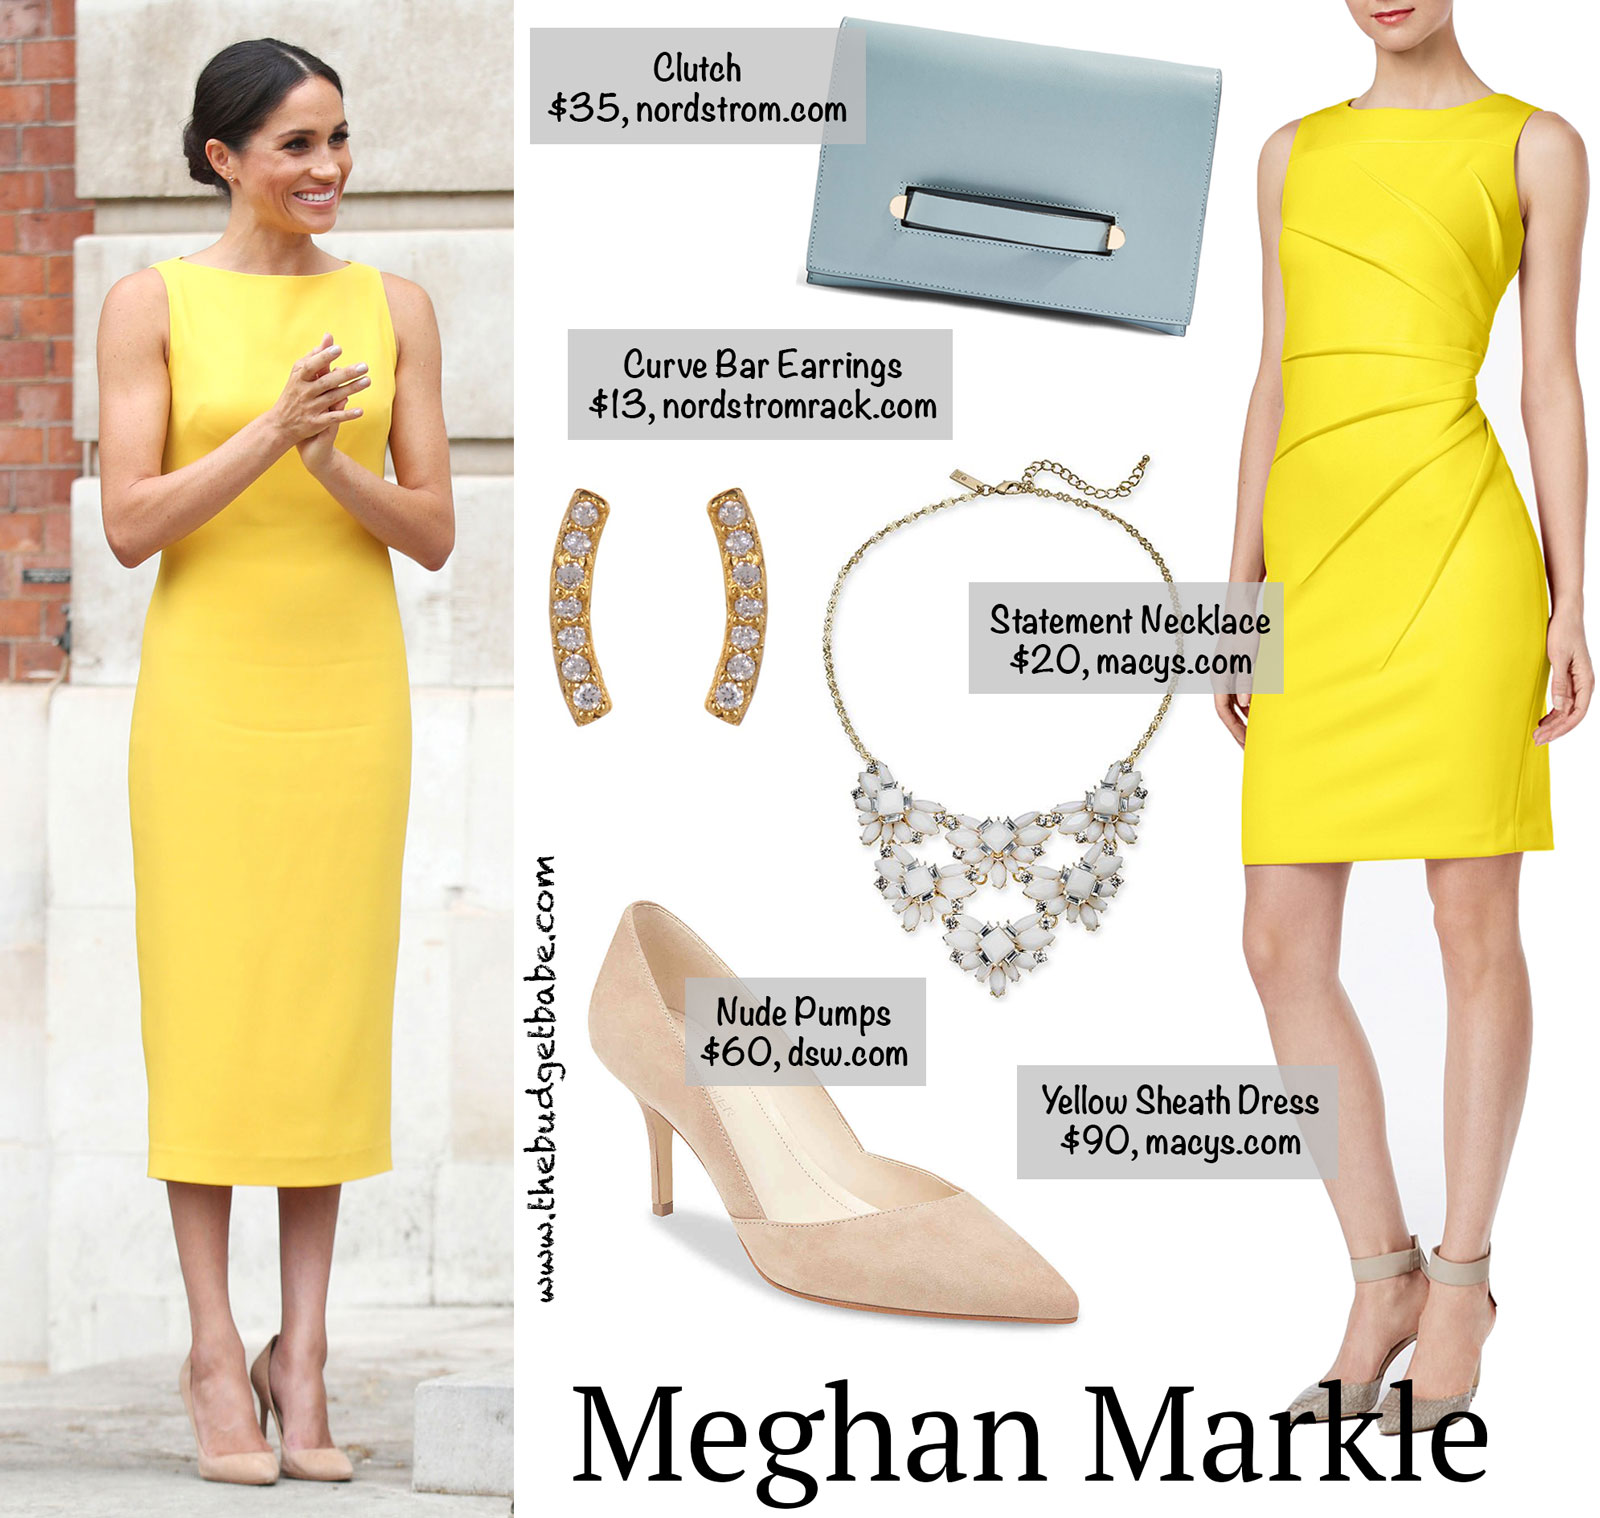 d7927b043f9d Get the Look for Less  Megan Markle s Stunning Yellow Dress.